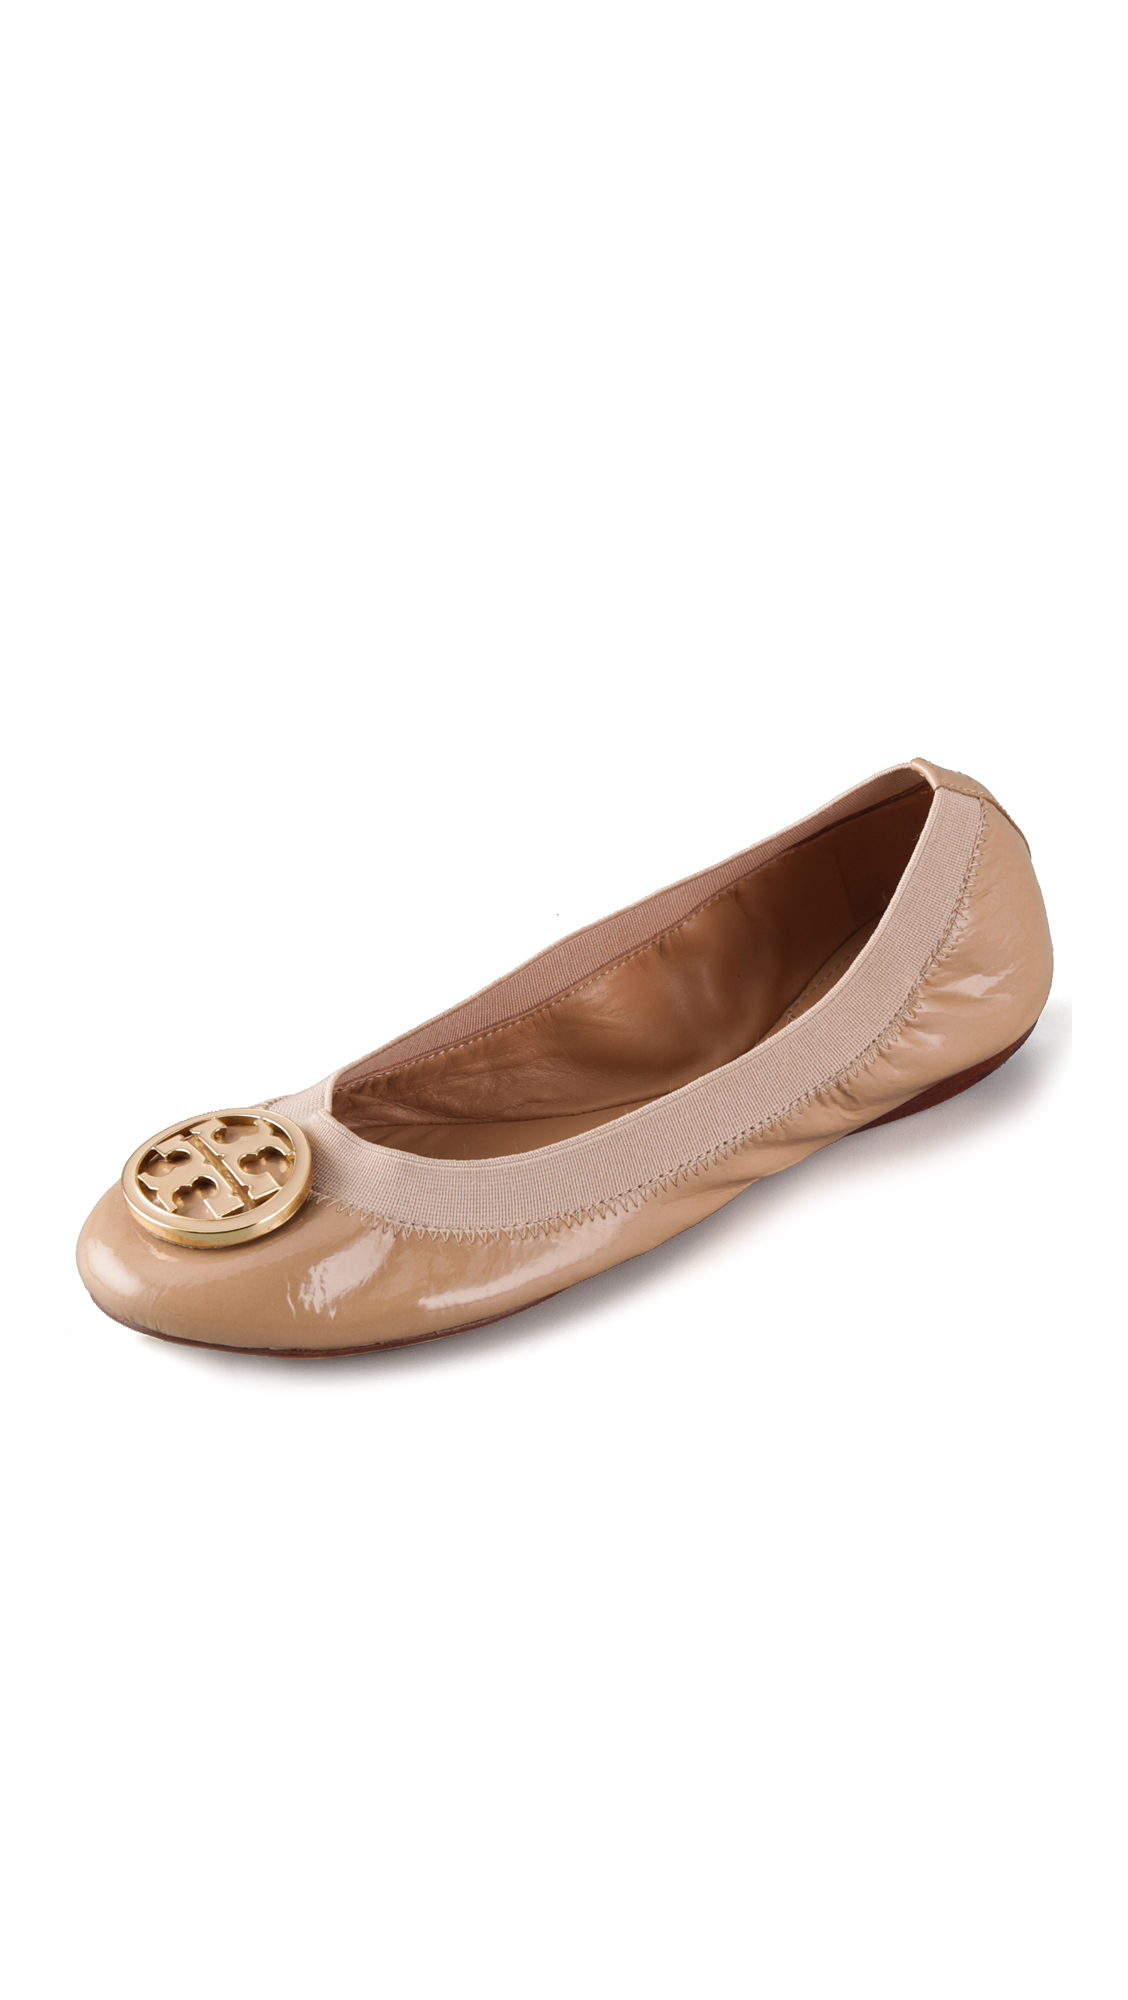 Tory Burch Shoes: All the shoes to keep you walking in comfort and style at modestokeetonl4jflm.gq Your Online Clothing & Shoes Store! Get 5% in rewards with Club O!